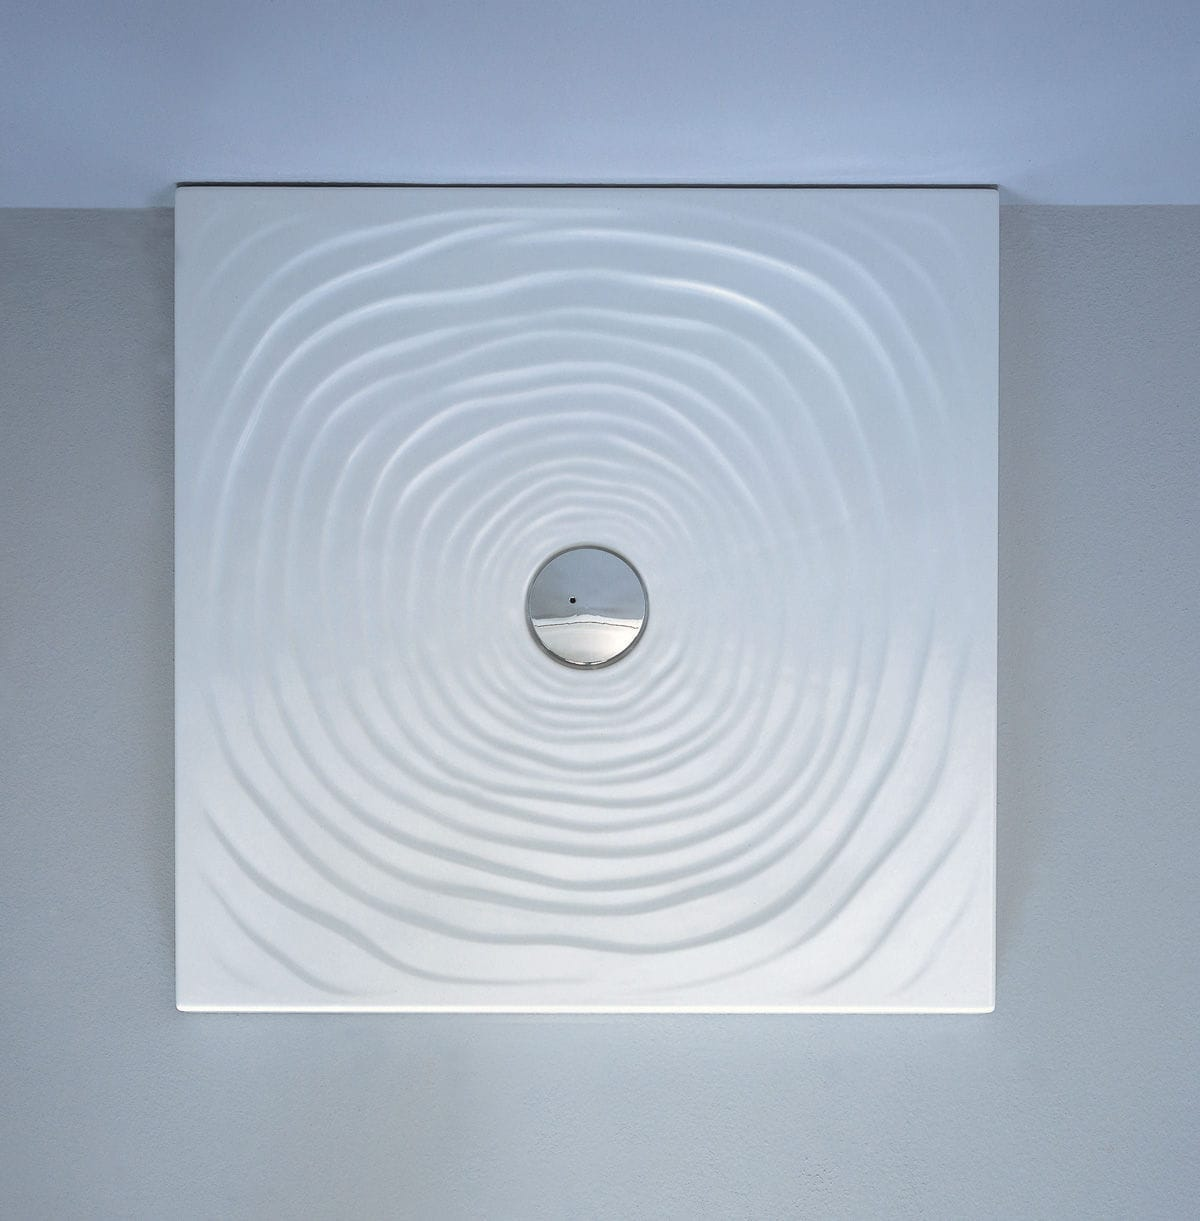 Square shower base / ceramic - WATER DROP 80x80 : DR80 by Luca ...